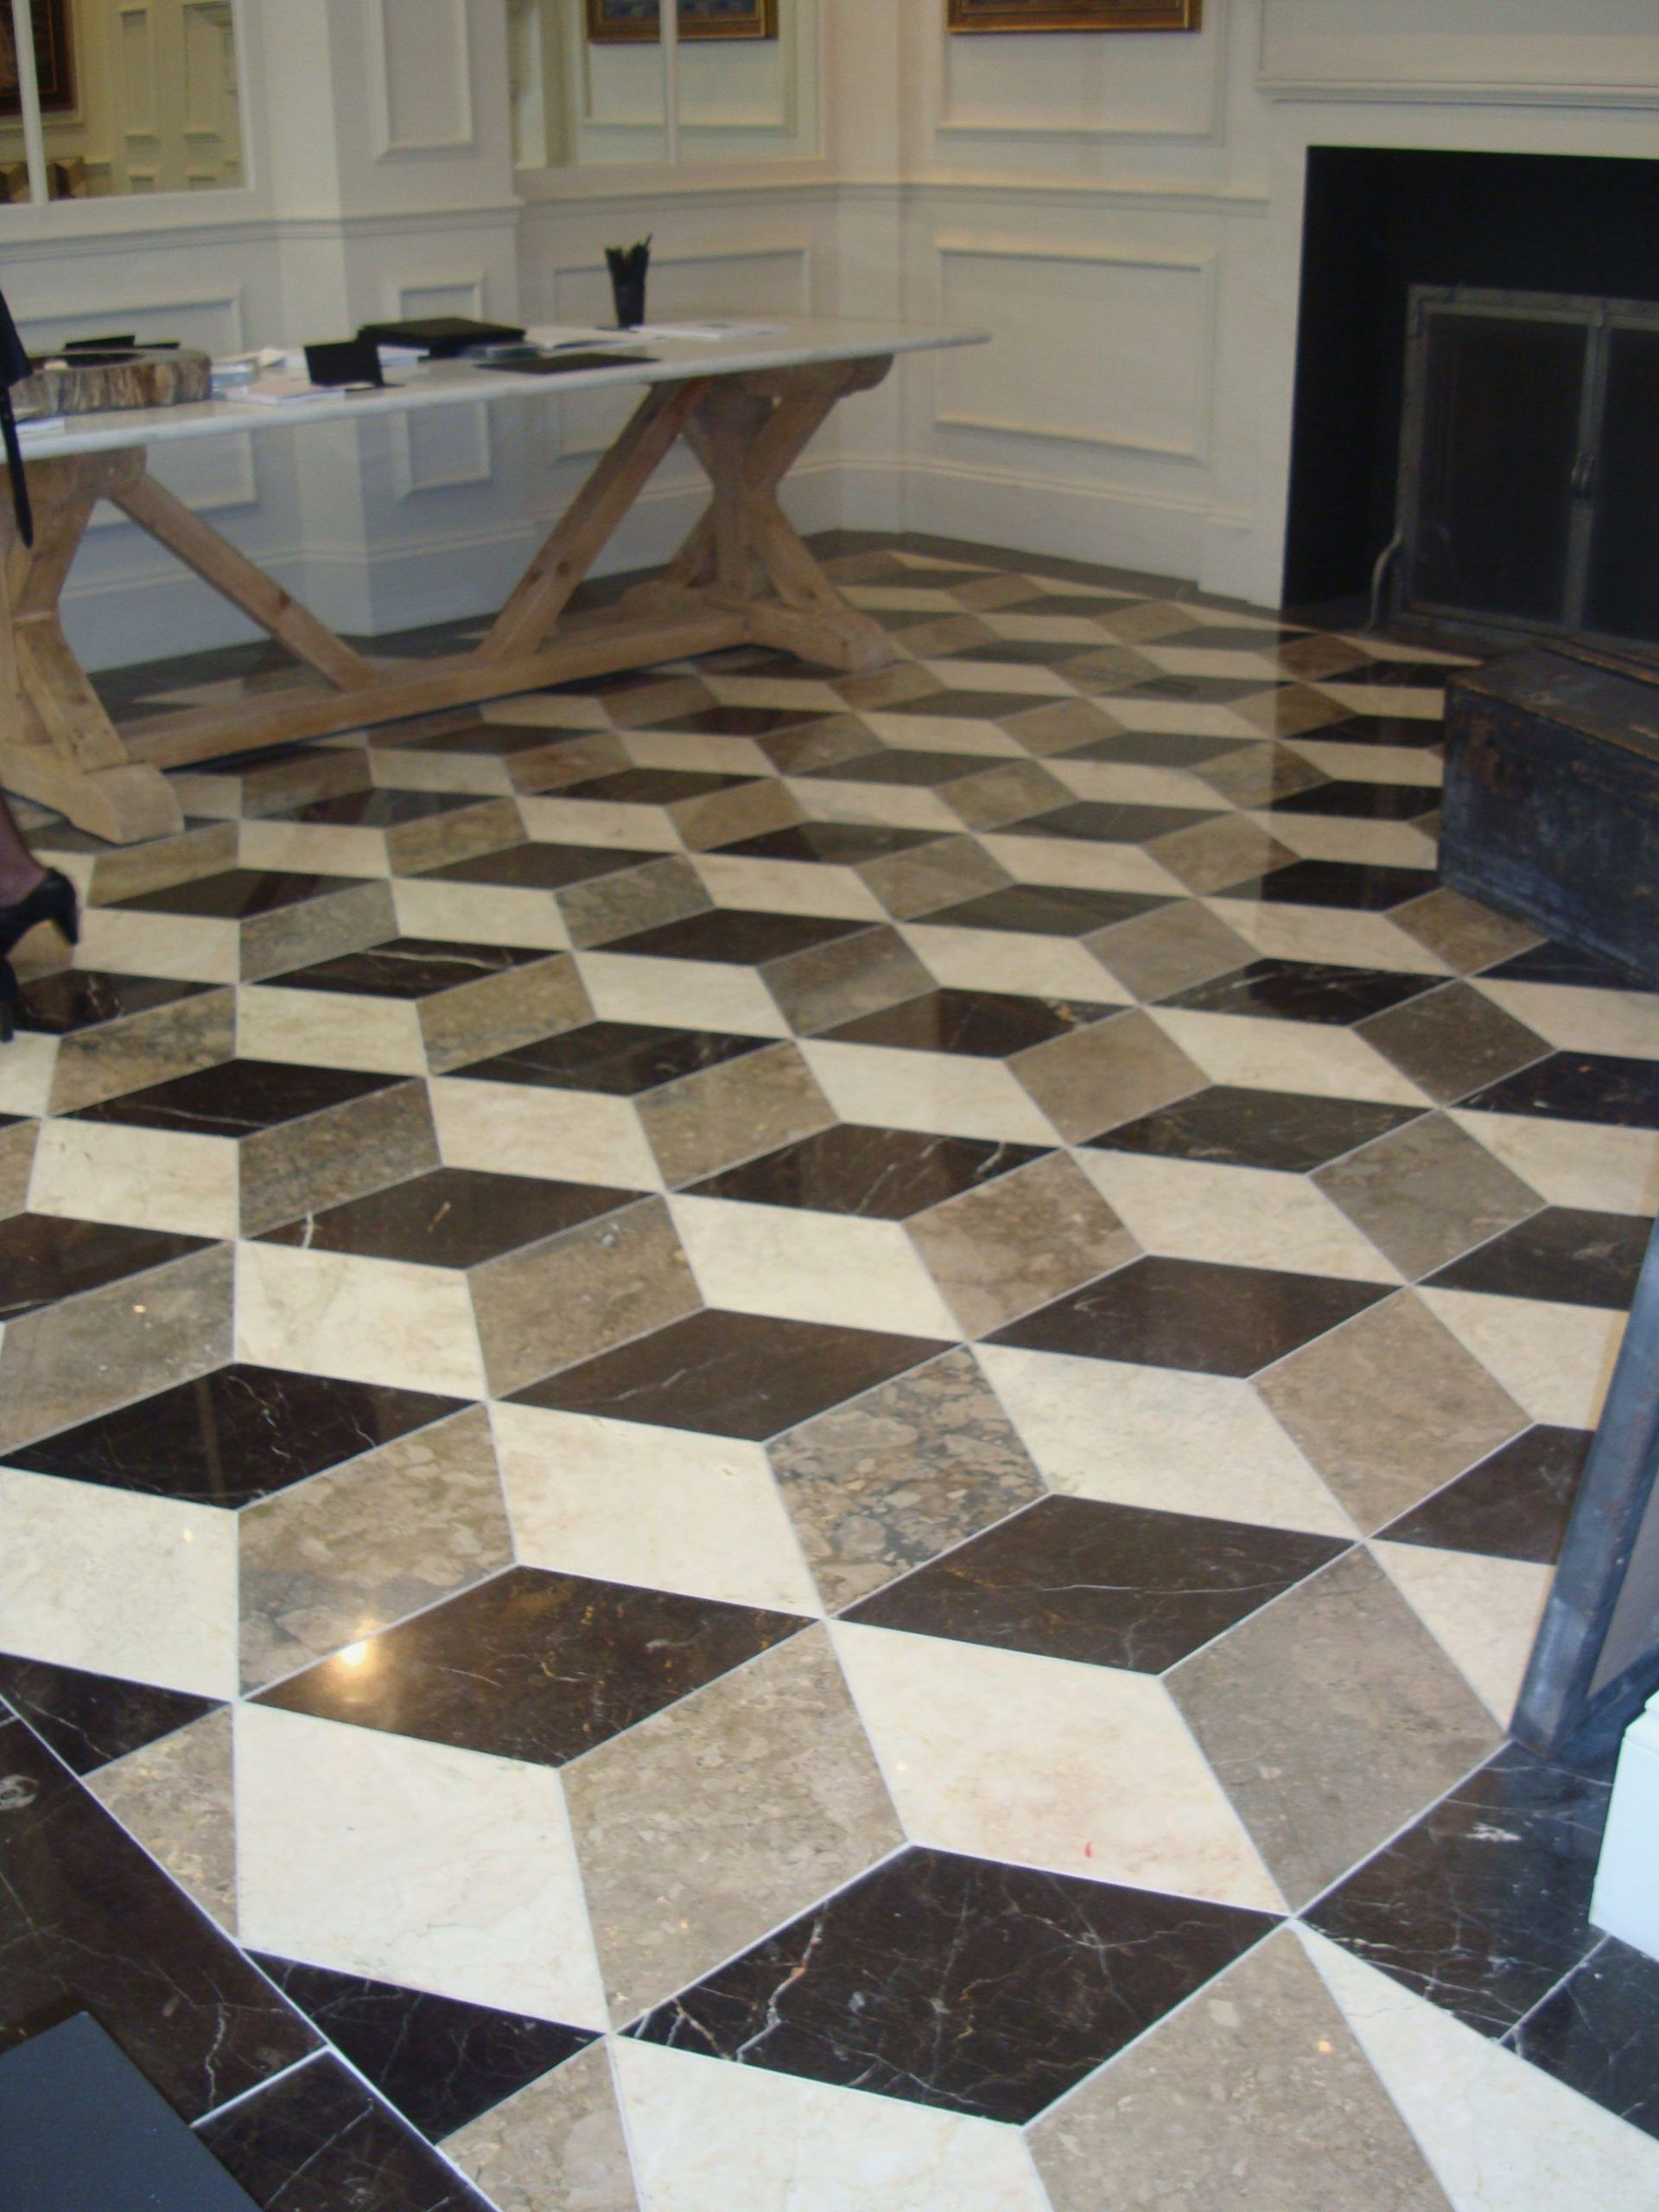 16 Granite Stone Floor Designs In 2020 Marble Floor Pattern Stone Flooring Flooring